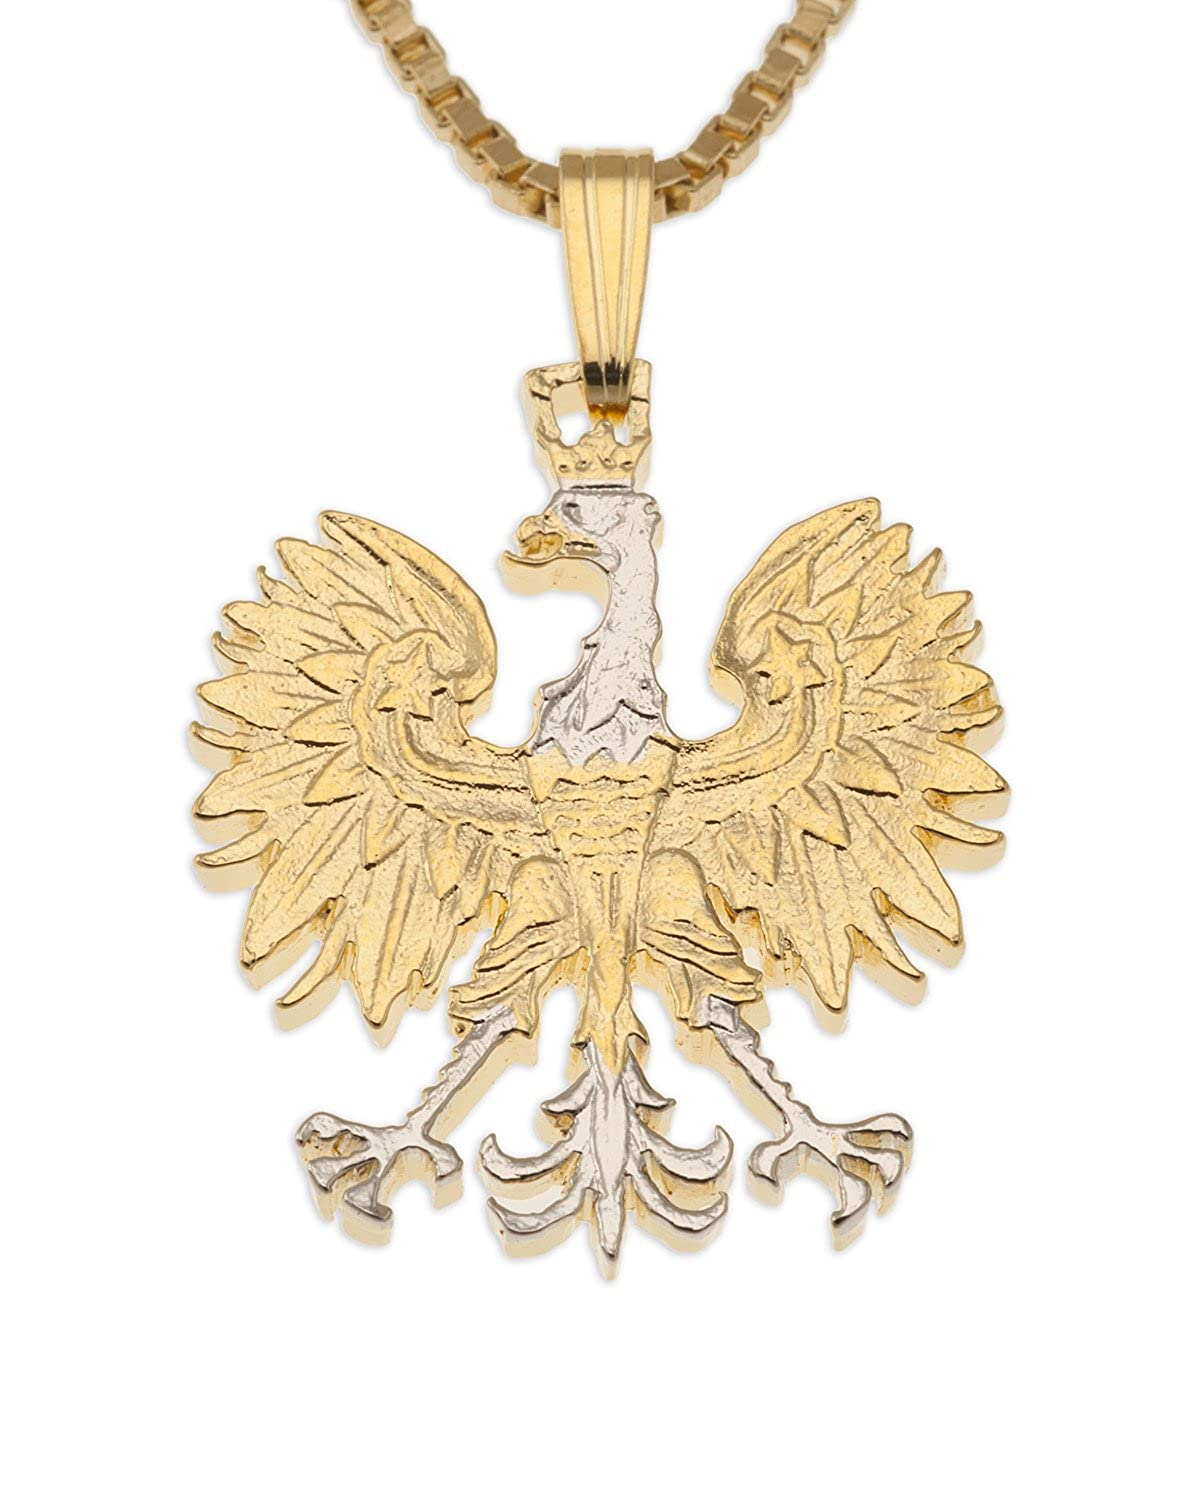 Polish eagle pendant necklace poland 10 zlotych hand cut coin polish eagle pendant necklace poland 10 zlotych hand cut coin amazon aloadofball Choice Image